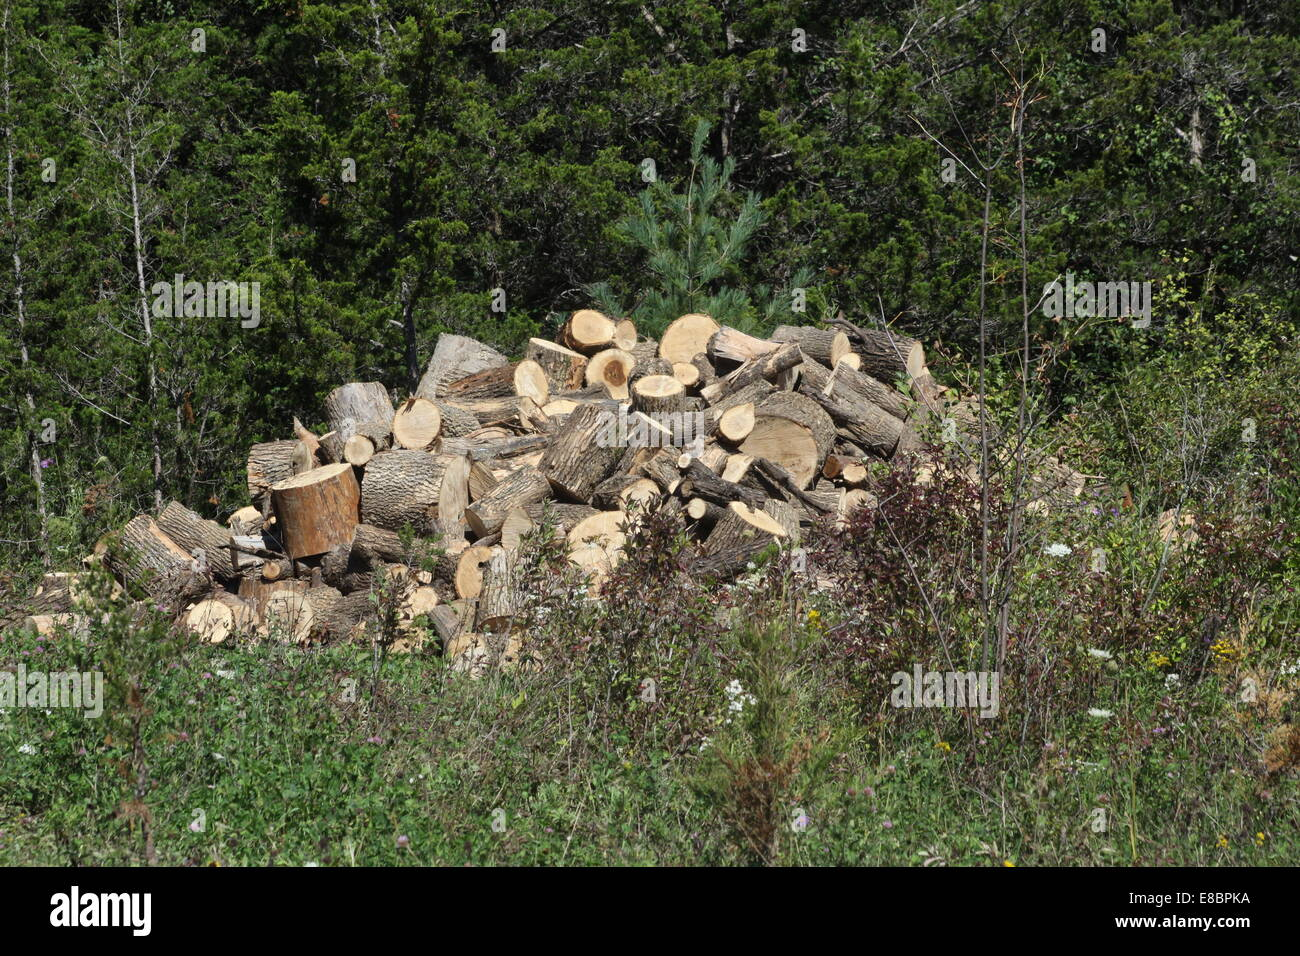 Freshly cut tree into short log lengths ready for drying and then splitting into firewood lengths. - Stock Image